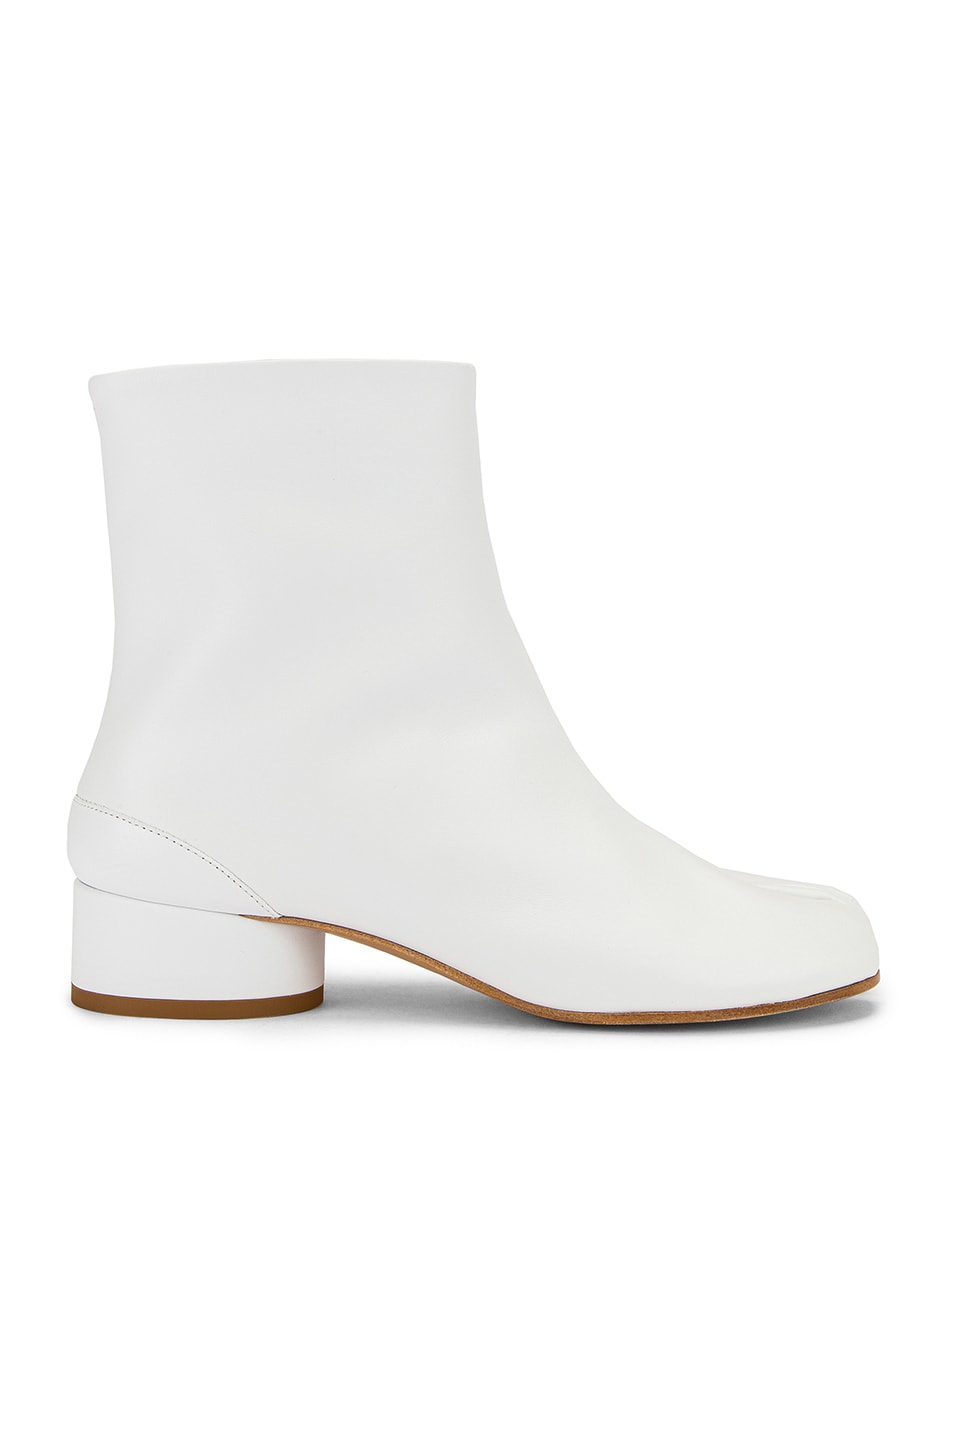 Image 1 of Maison Margiela Tabi Boots in White